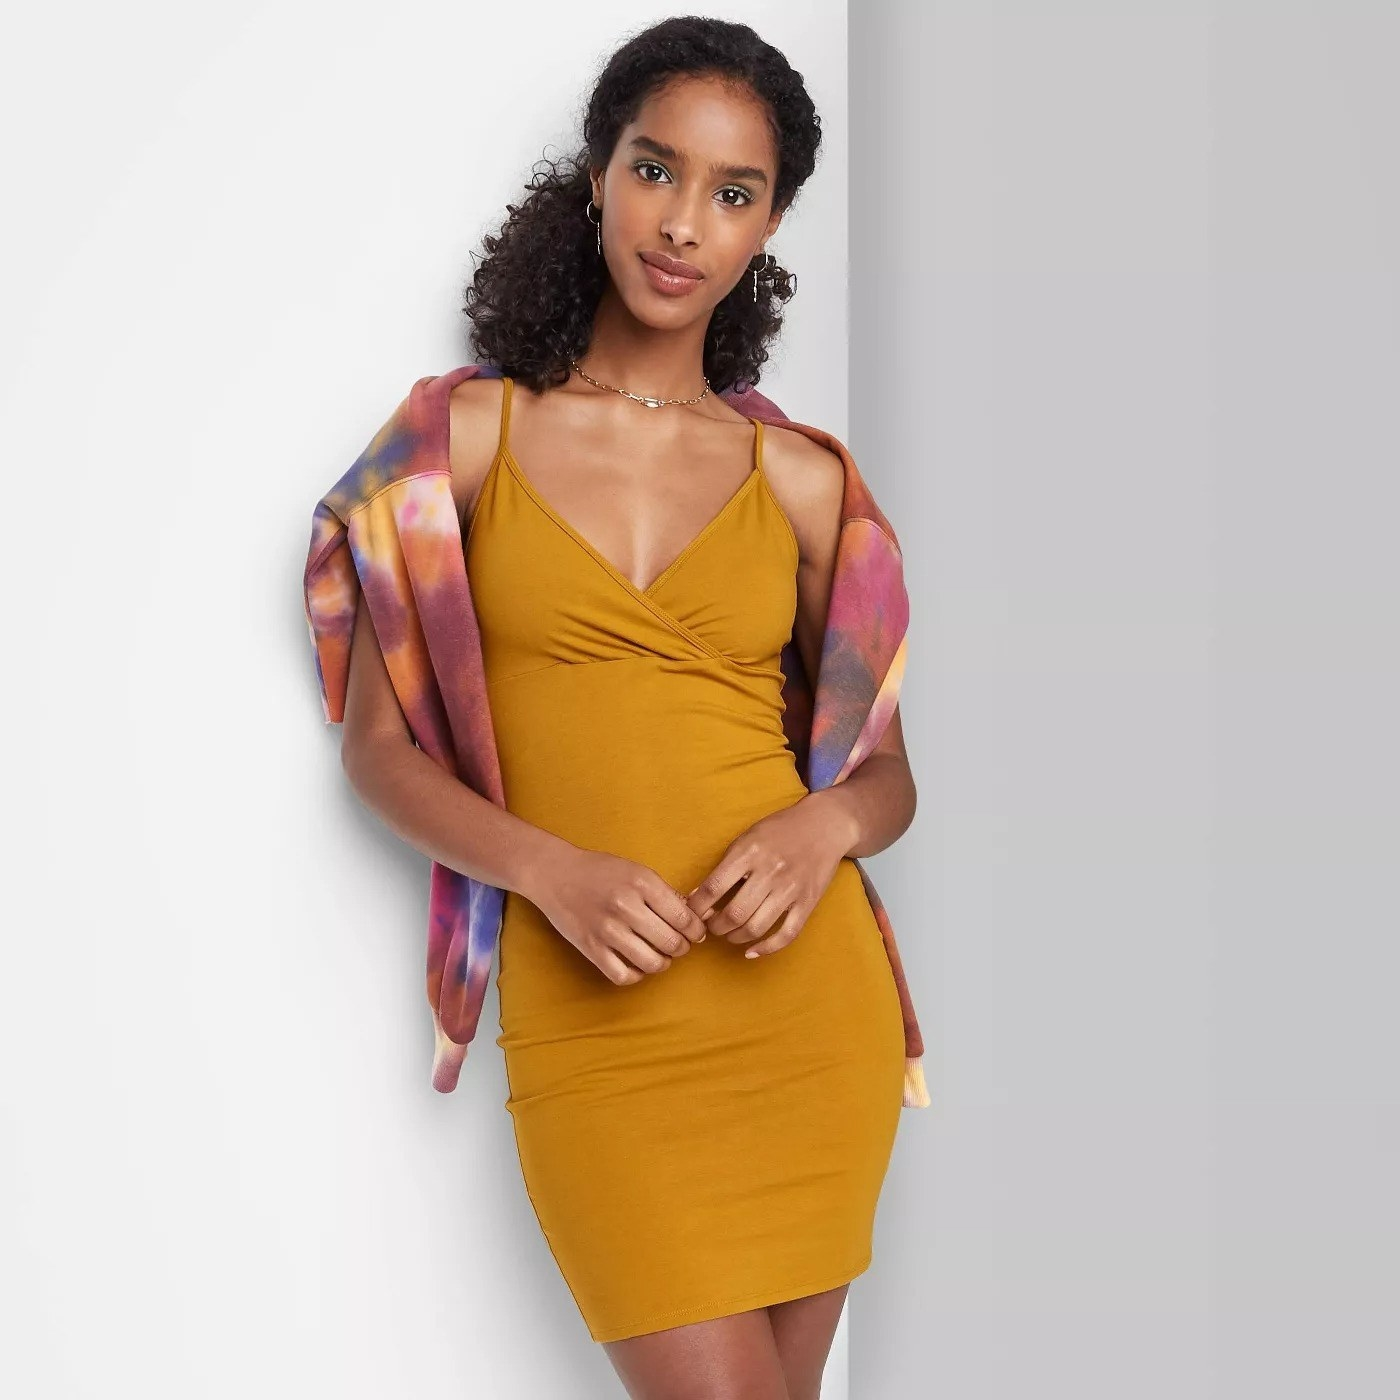 Model wearing yellow dress with thin straps, stops at the knee